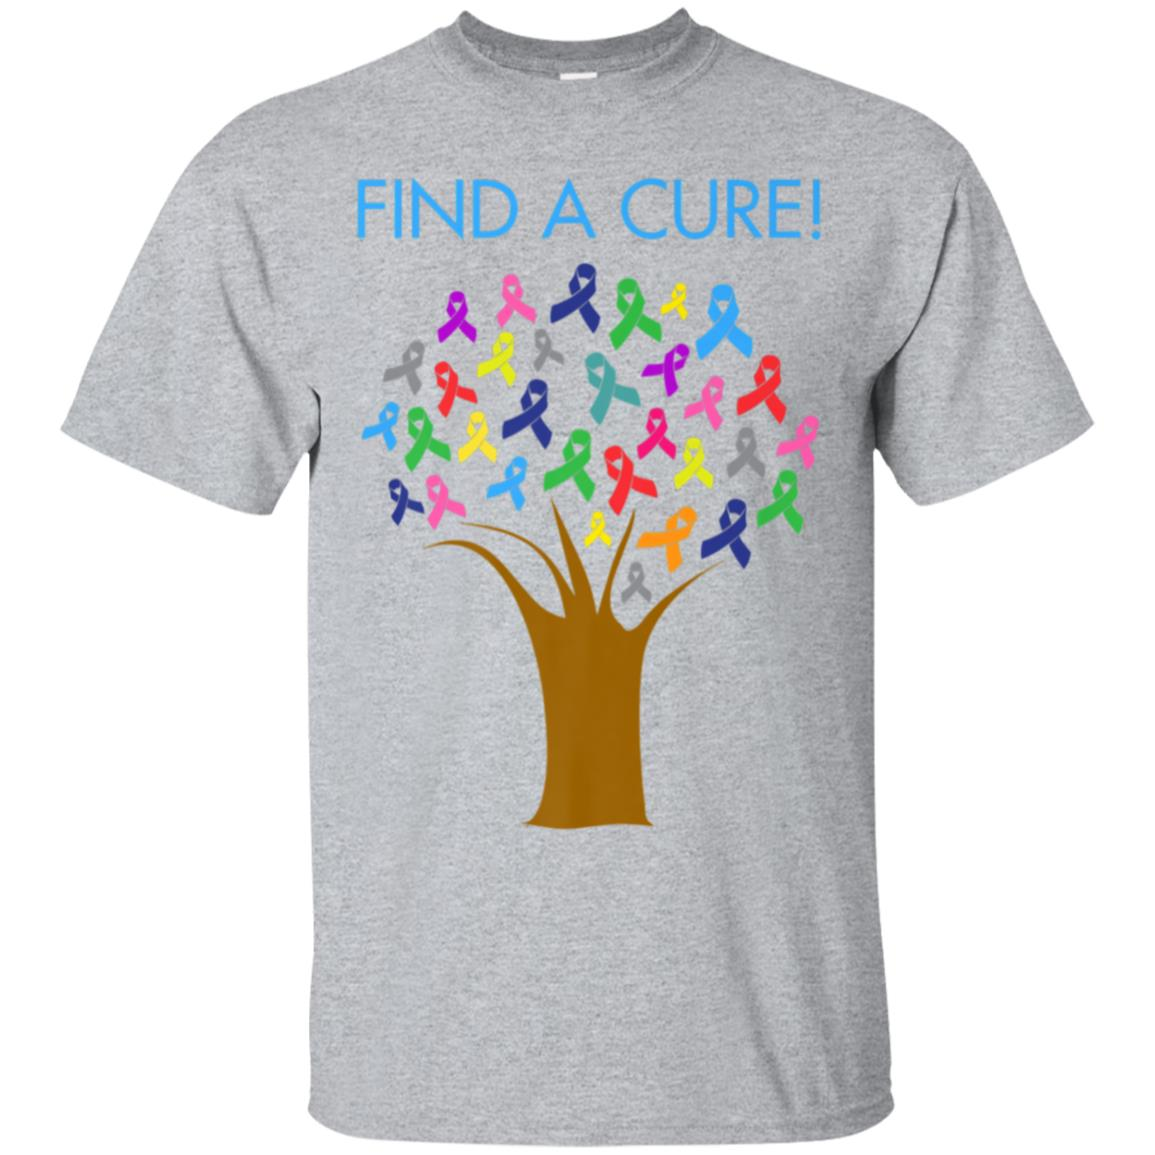 Cancer Awareness Ribbon Tree T-Shirt 99promocode